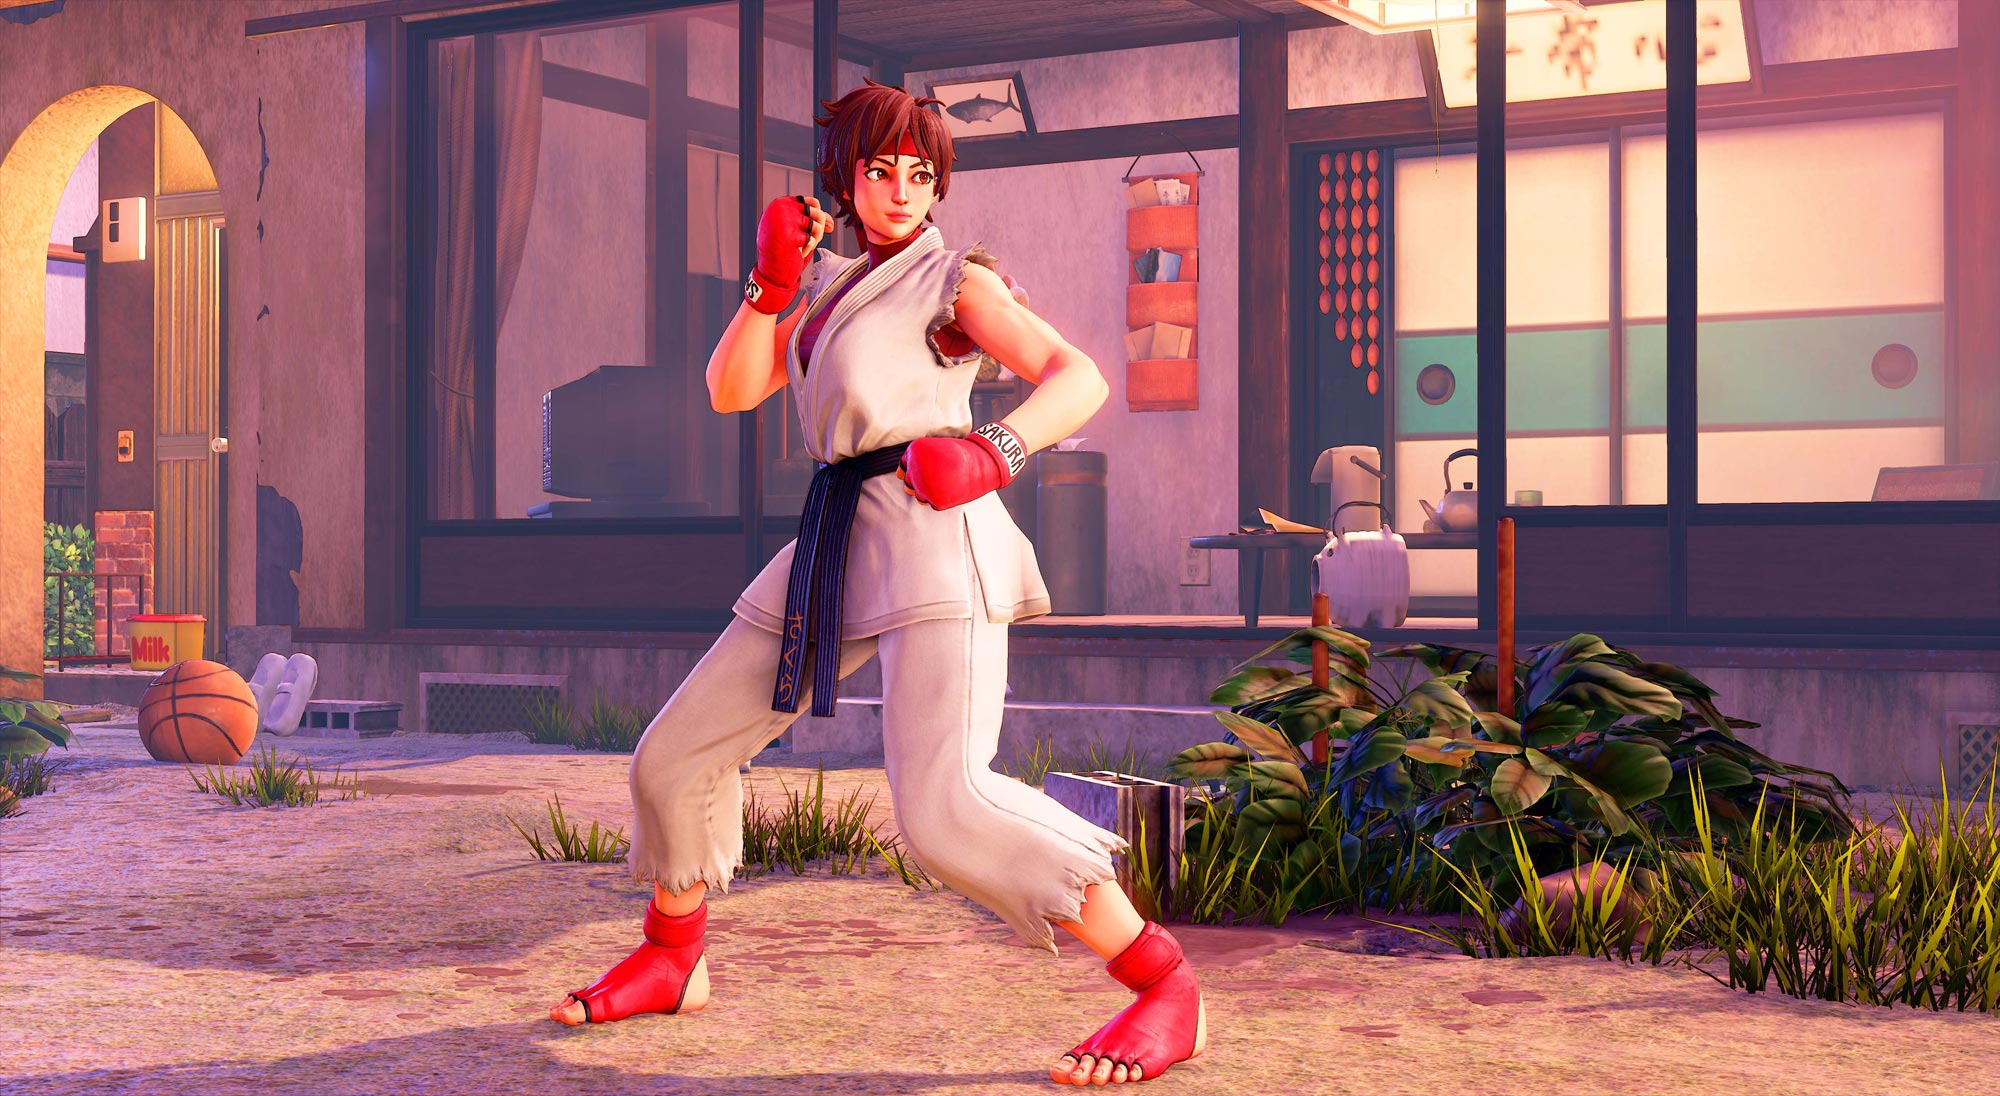 Sakura in Street Fighter 5 4 out of 7 image gallery